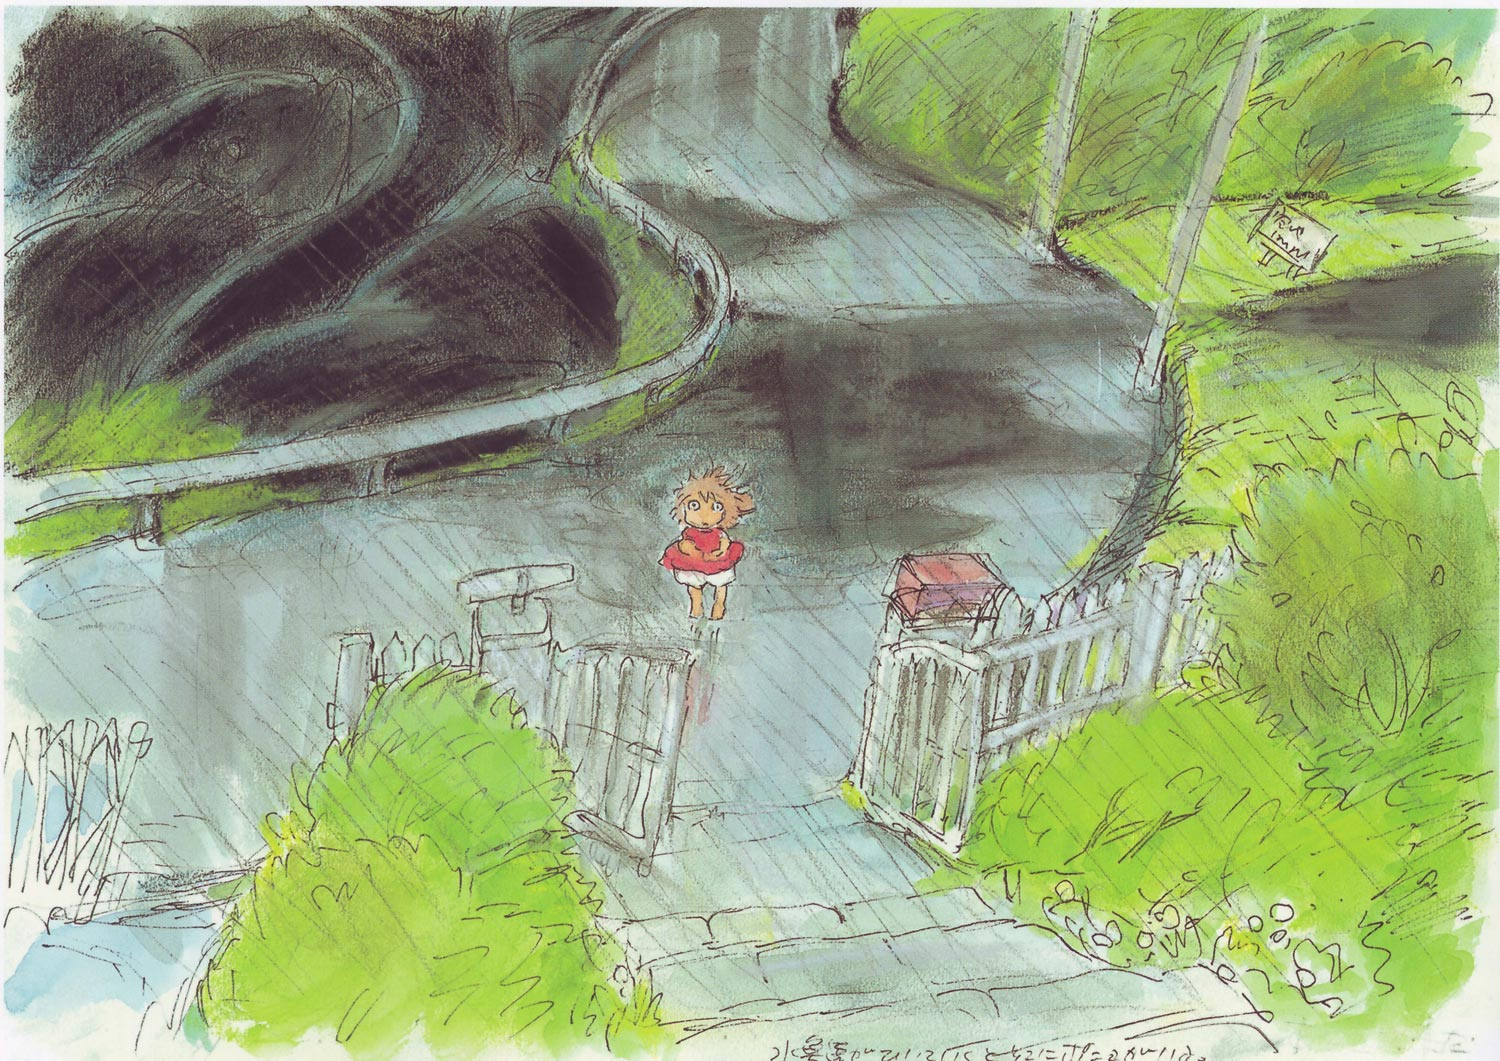 ponyo_on_the_cliff_by_the_sea_artwork_color_key__08.jpg